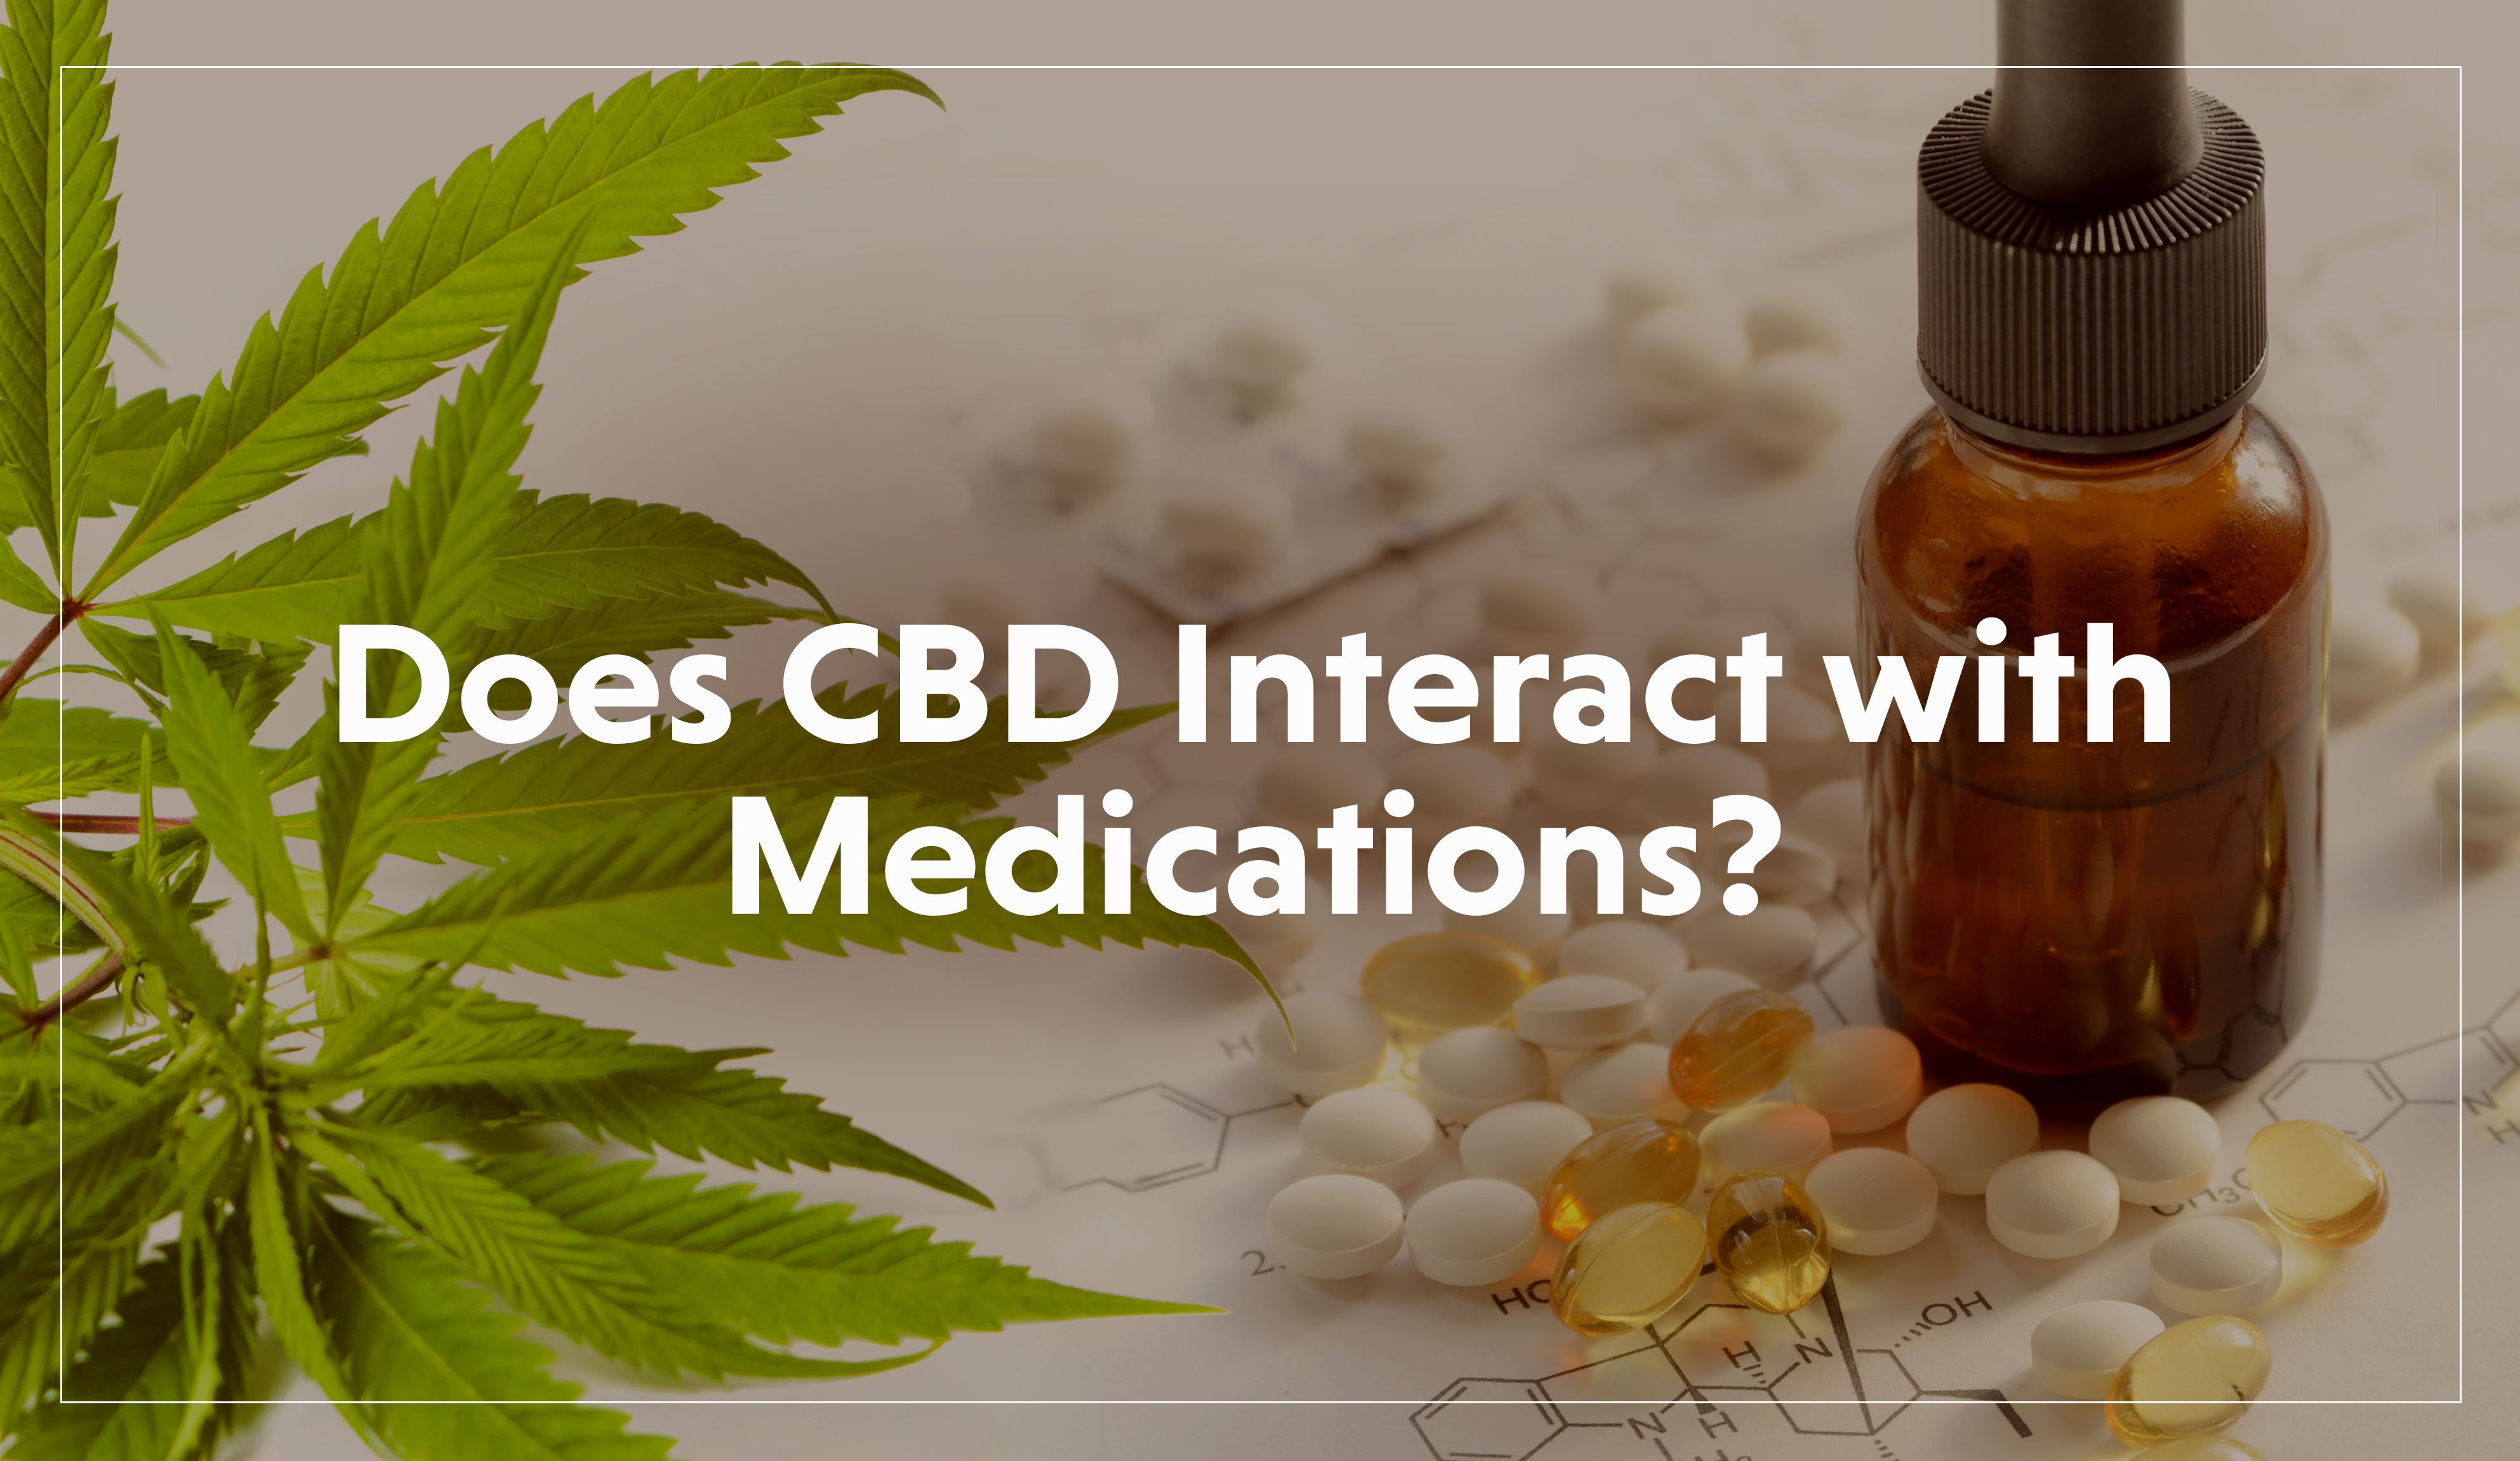 Does CBD Interact with Medications?